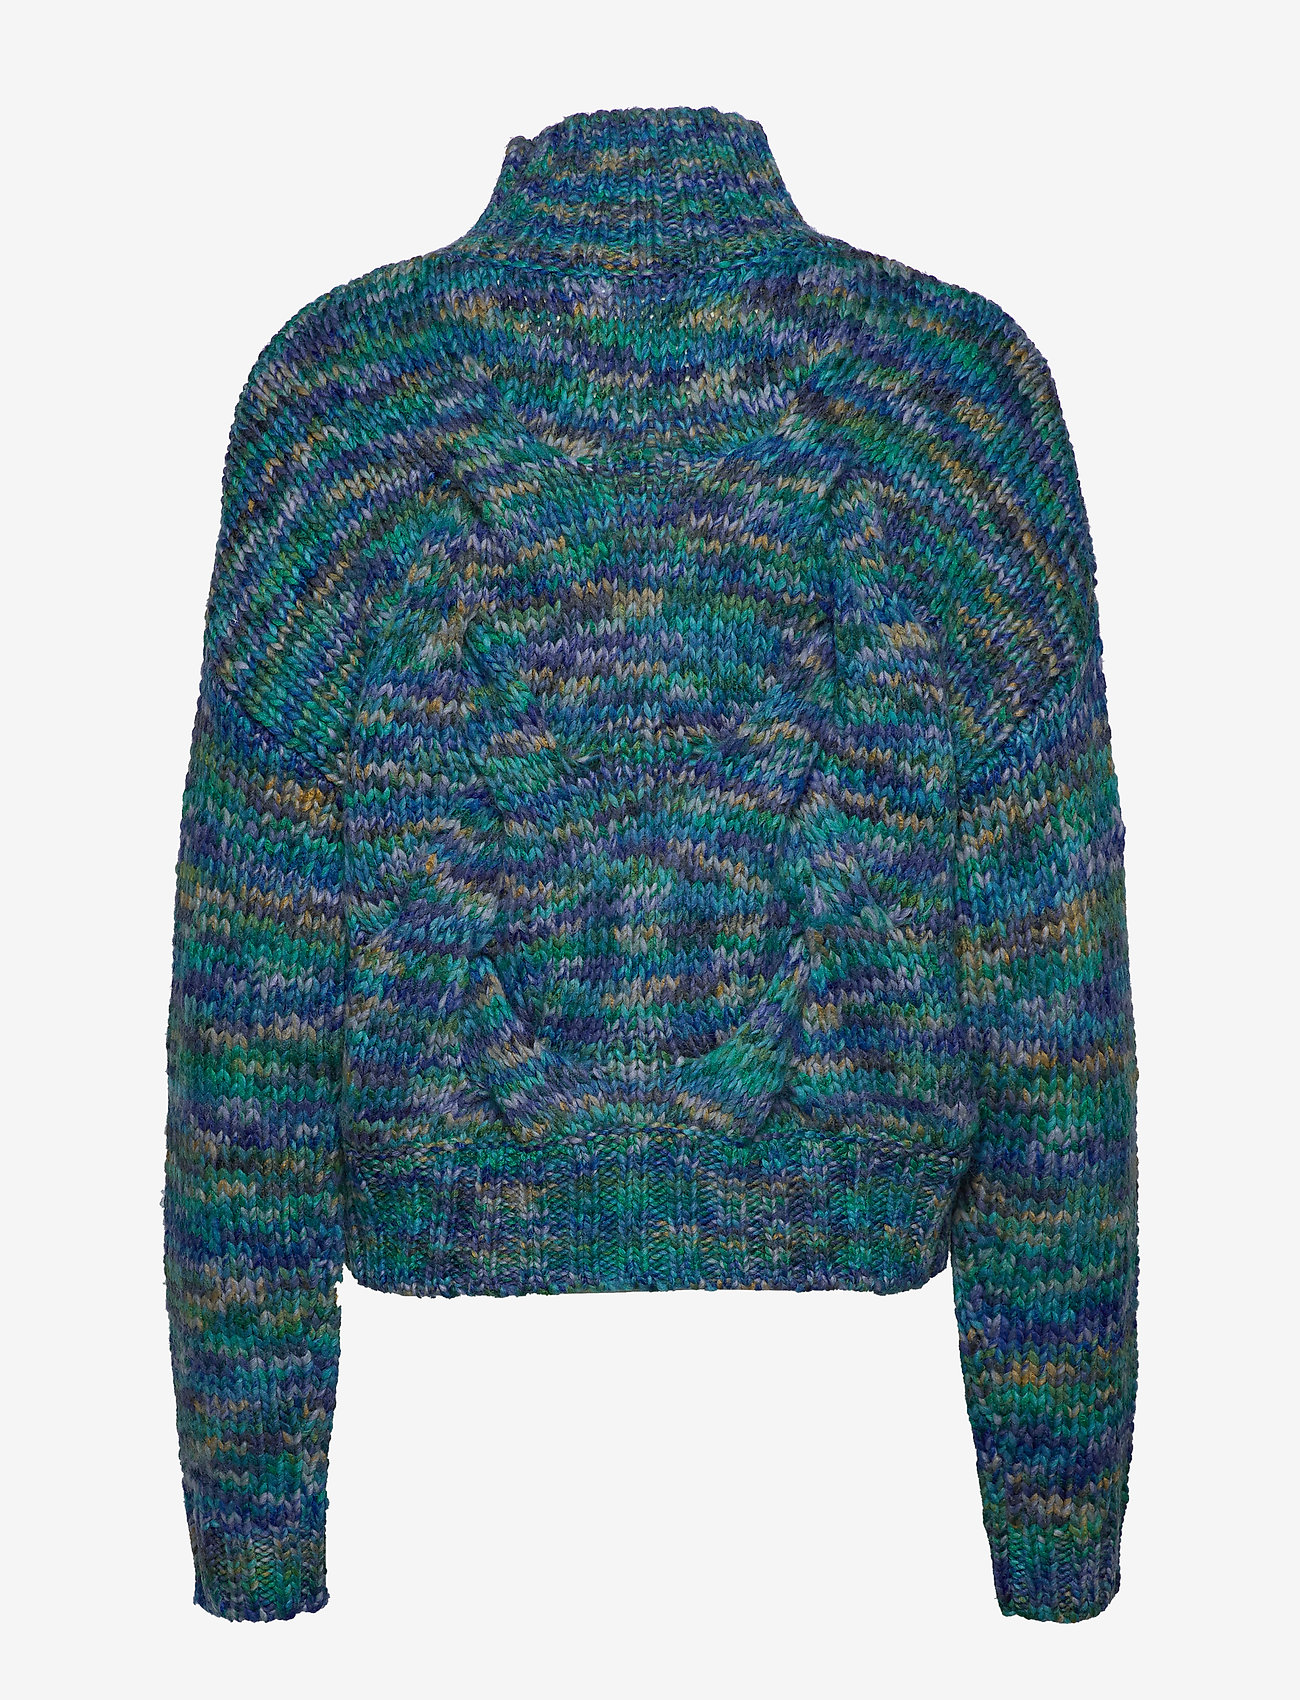 2NDDAY - 2ND Edition Johnny - turtlenecks - multi colour - 1